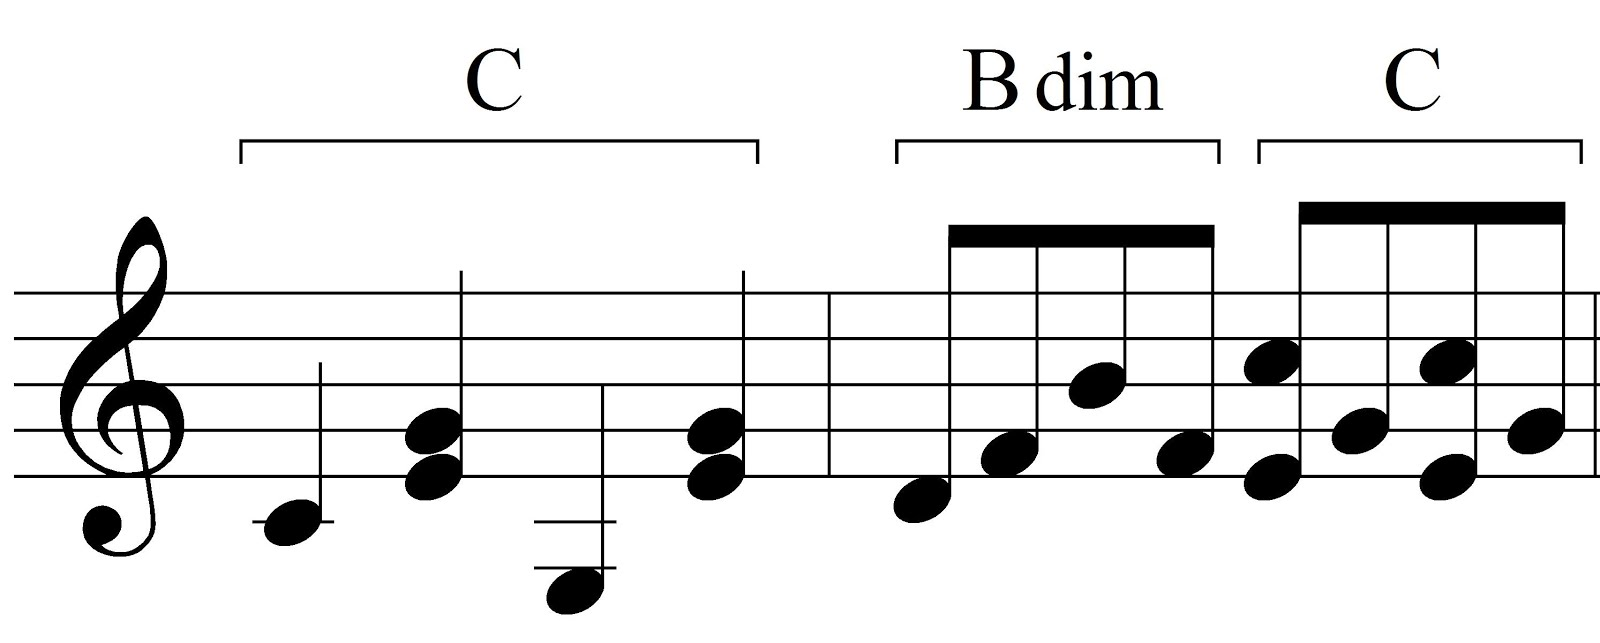 Music theory block chords and broken chords broken chords hexwebz Gallery